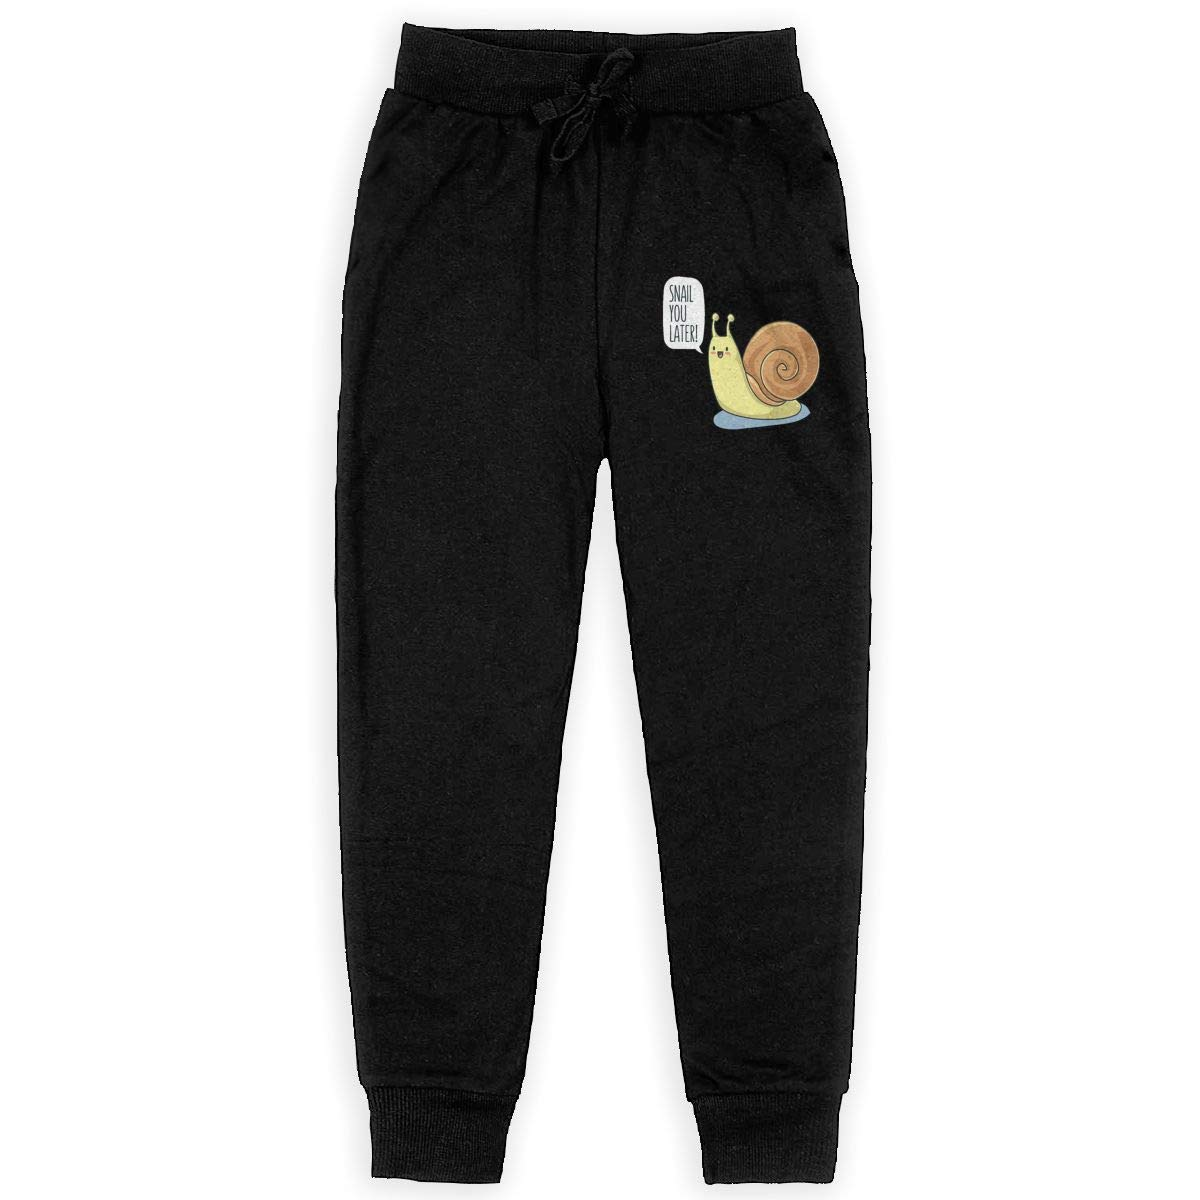 Kim Mittelstaedt Snail You Letter Boys Big Active Basic Casual Pants Sweatpants for Boys Black